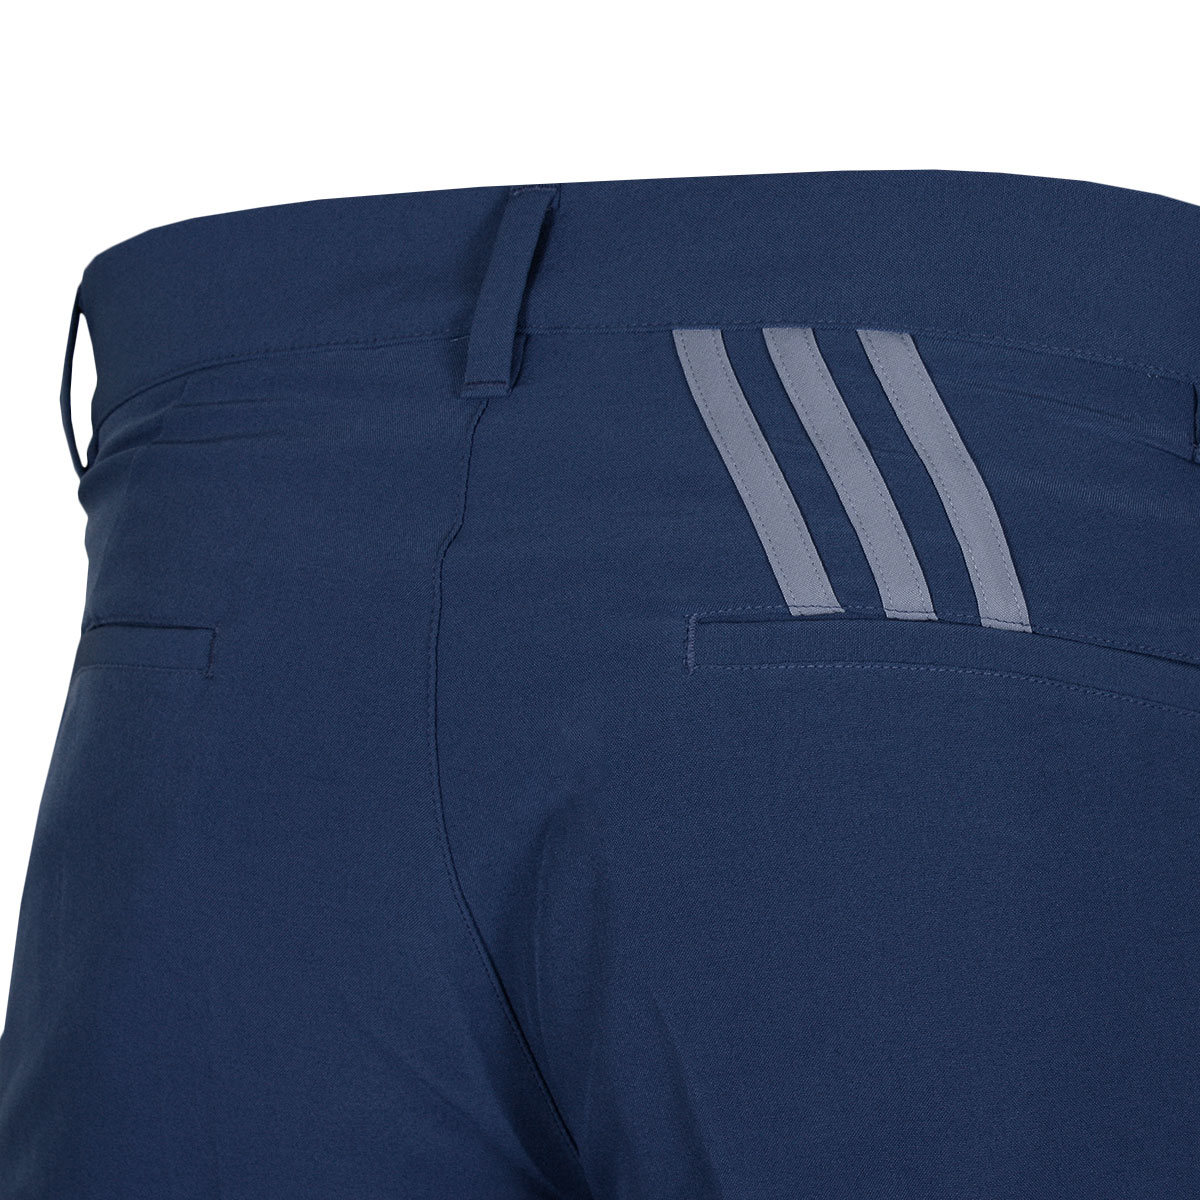 adidas-Golf-Mens-Ultimate-3-Stripes-Stretch-Pant-Trousers-44-OFF-RRP Indexbild 38